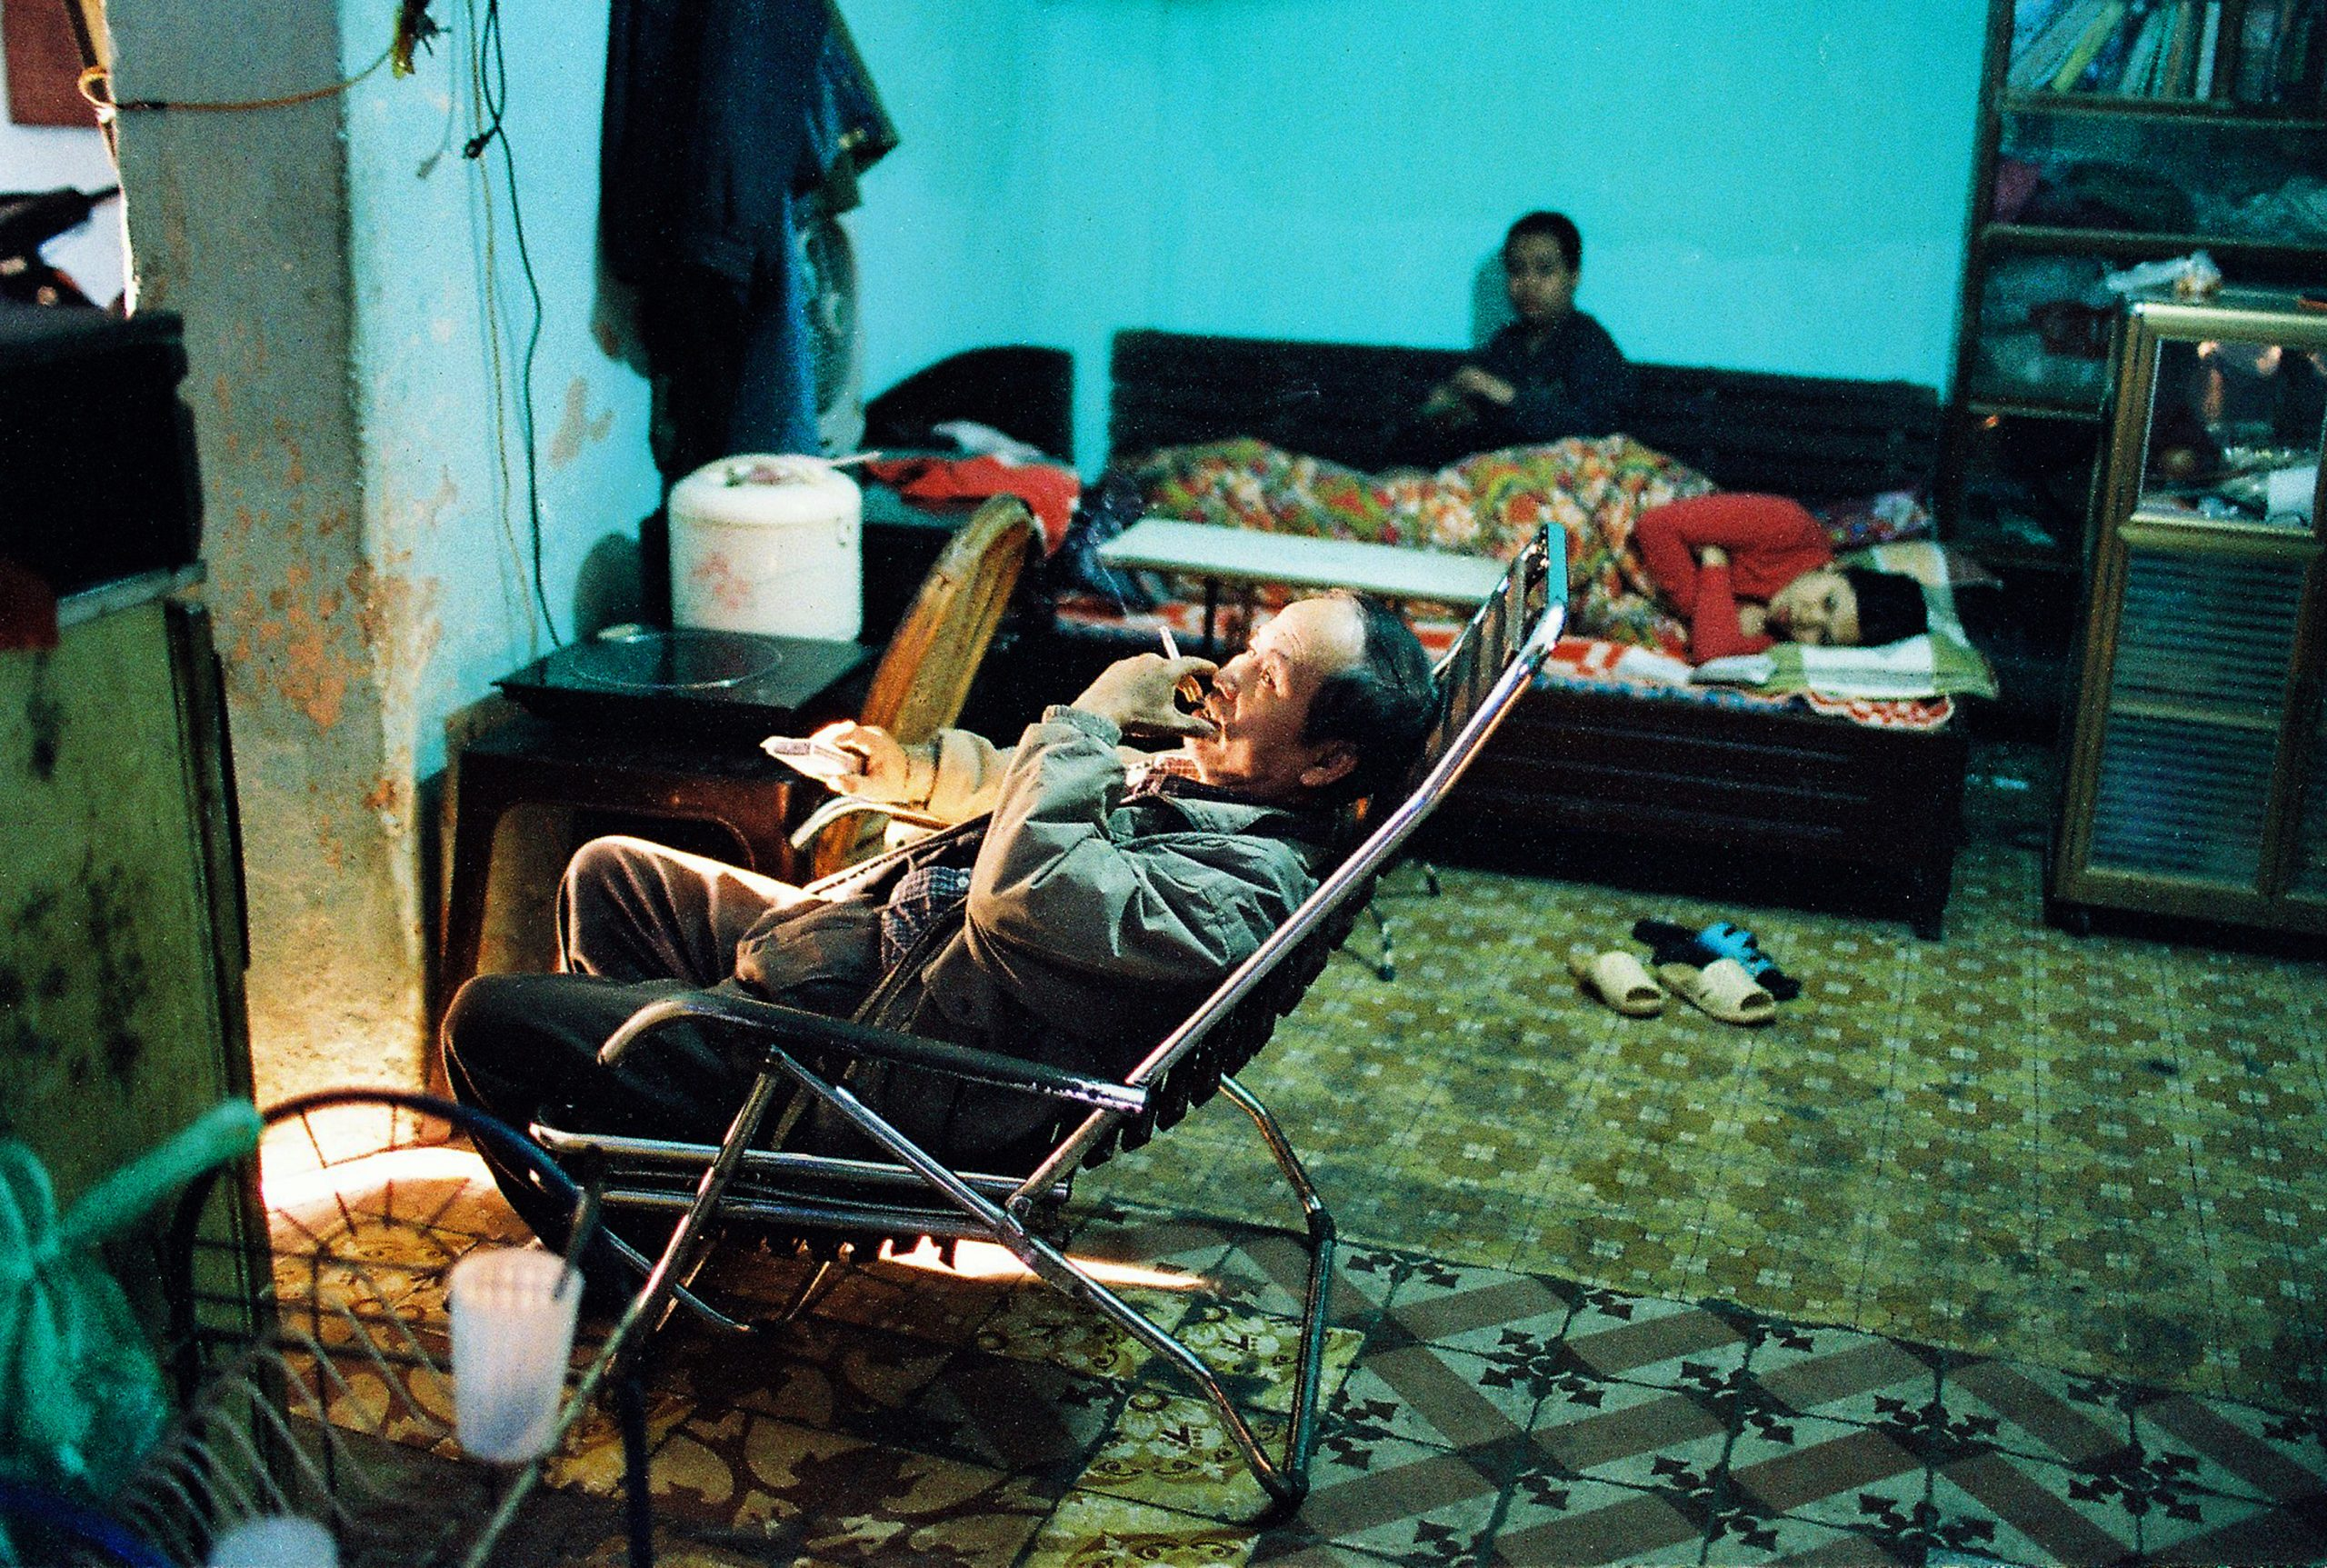 Color photo by Maika Elan from Inside Hanoi. Family watching television.